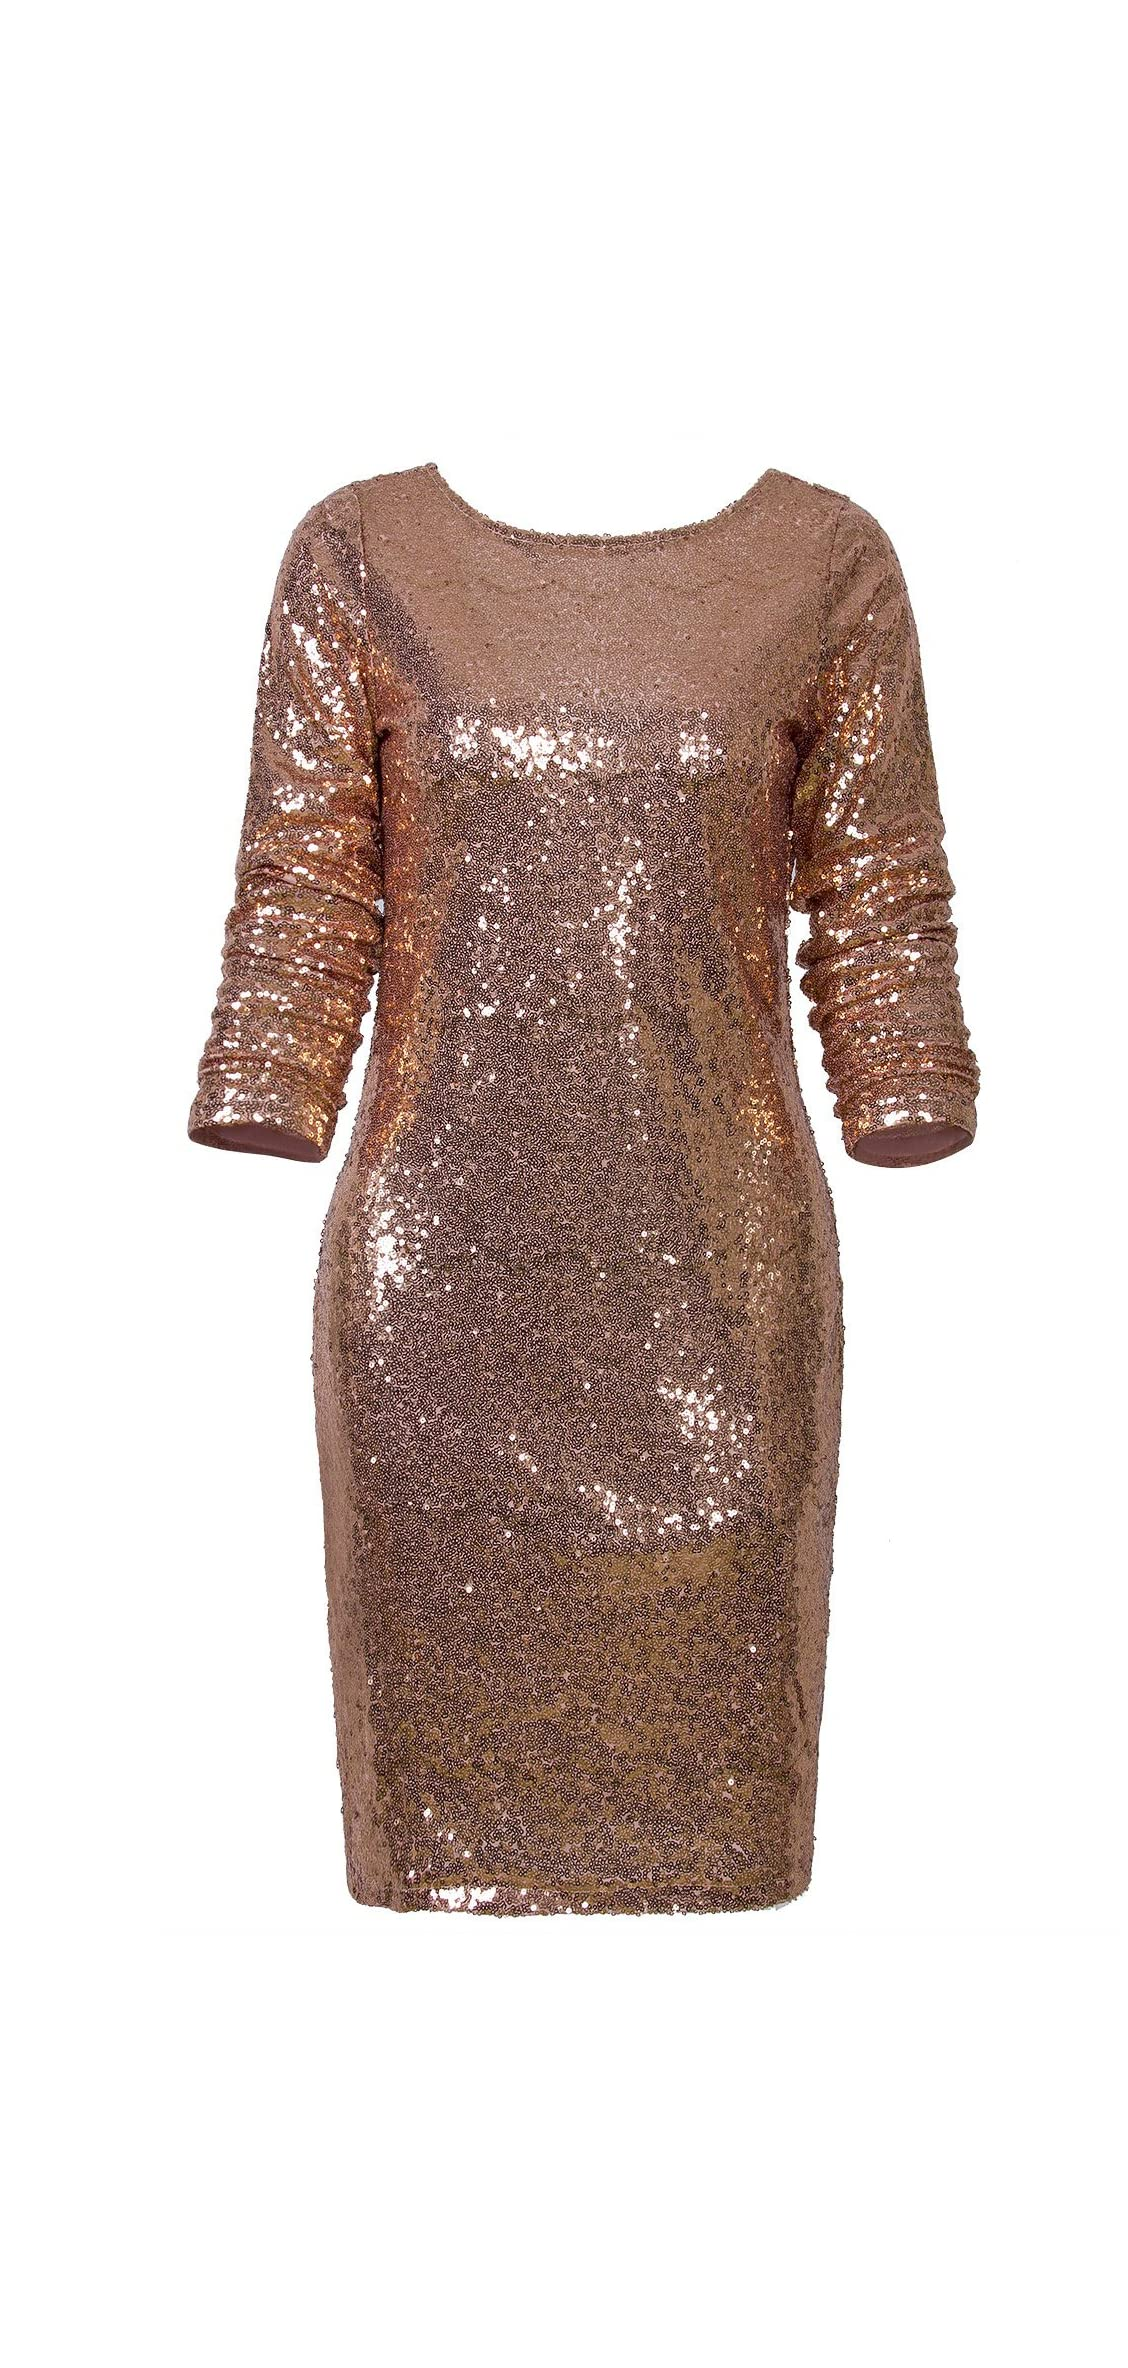 Women's Sparkle Glitzy Glam Sequin Long Sleeve Flapper